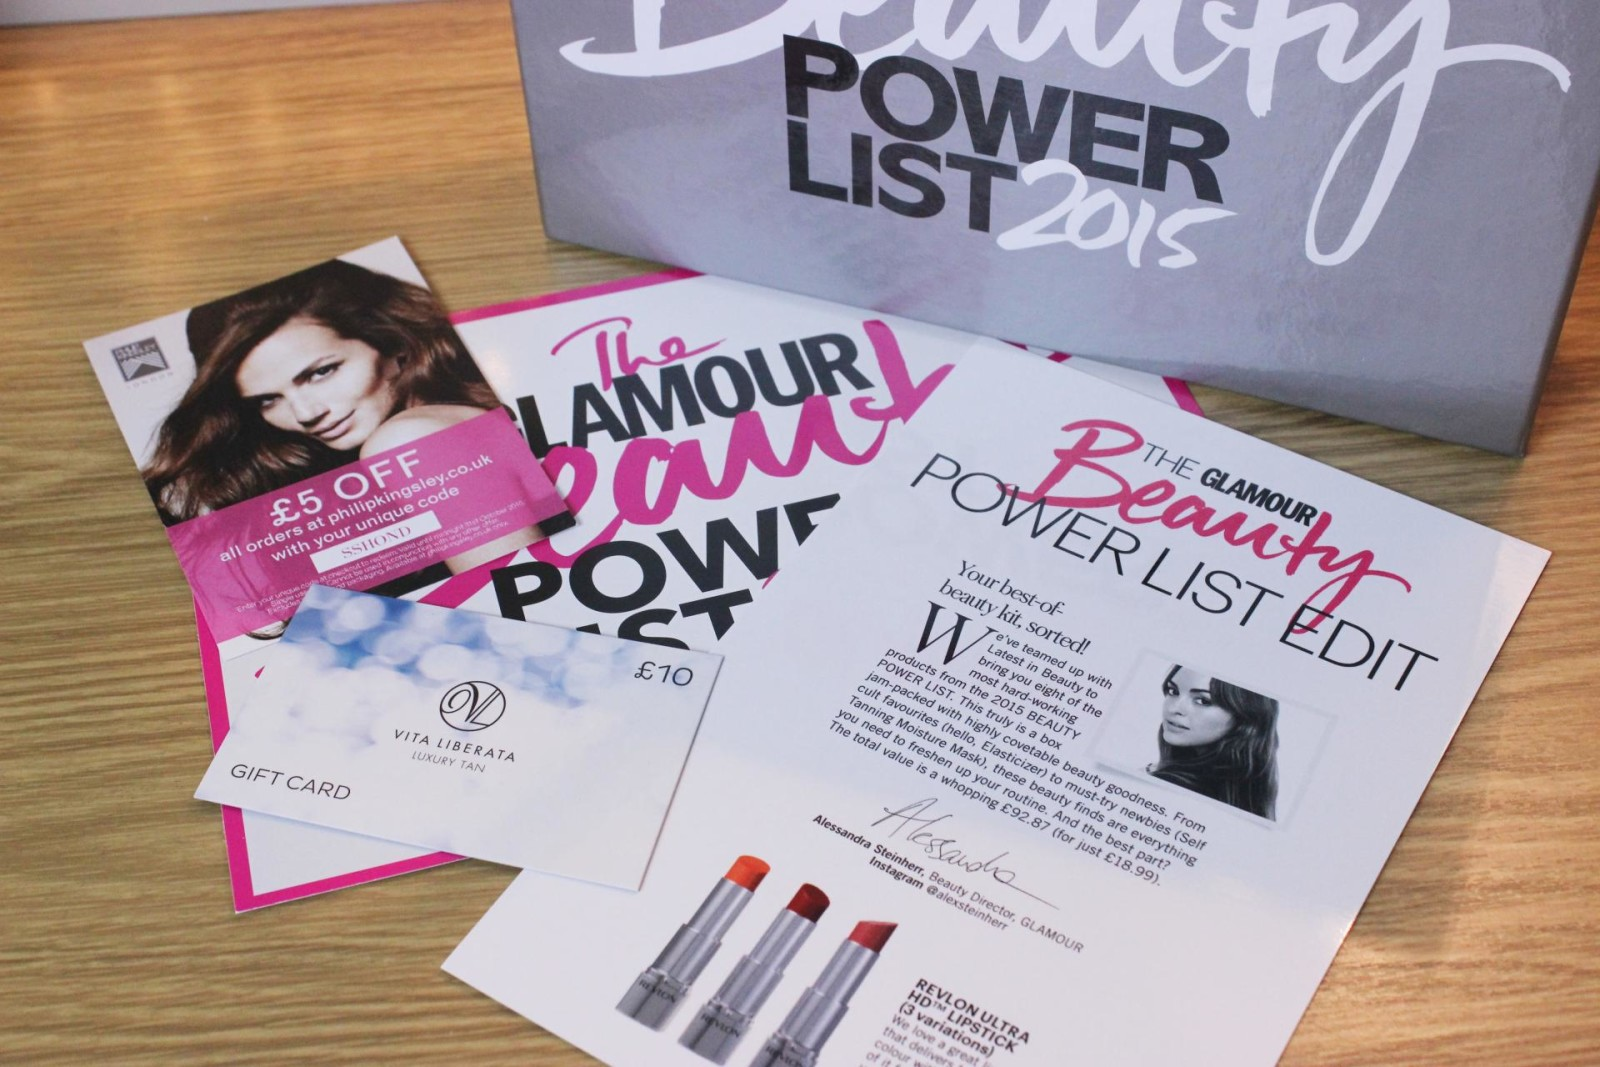 Latest in Beauty Glamour Beauty Power List 2015